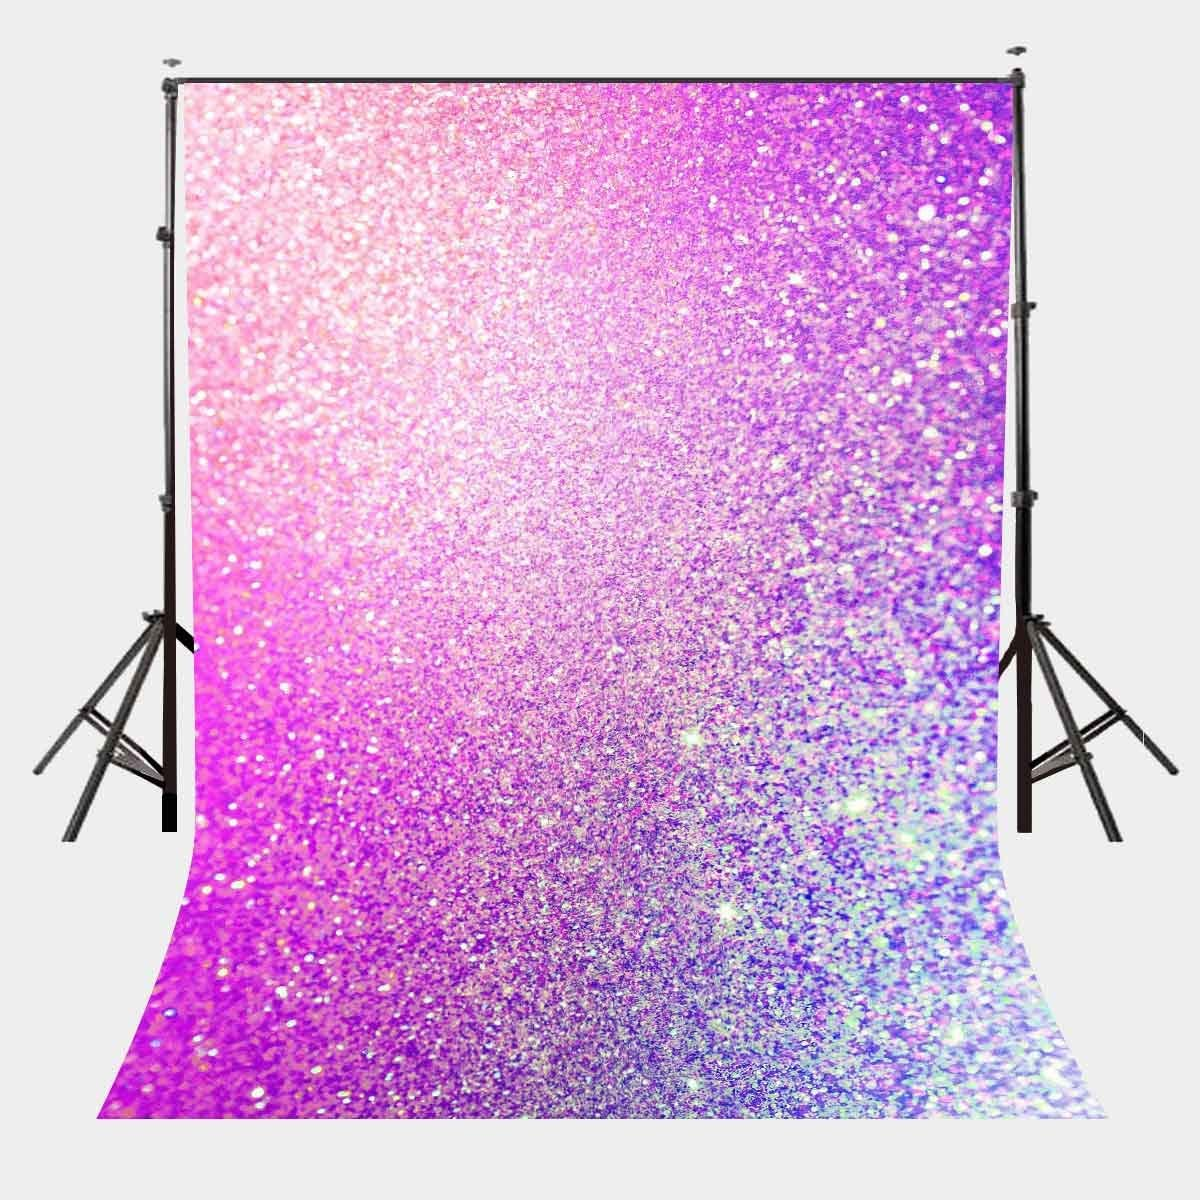 LYLYCTY 5X7ft Polyester Customized Backdrop Twinkling Sequins Photography Background Color of The Year 2018 LYLX075